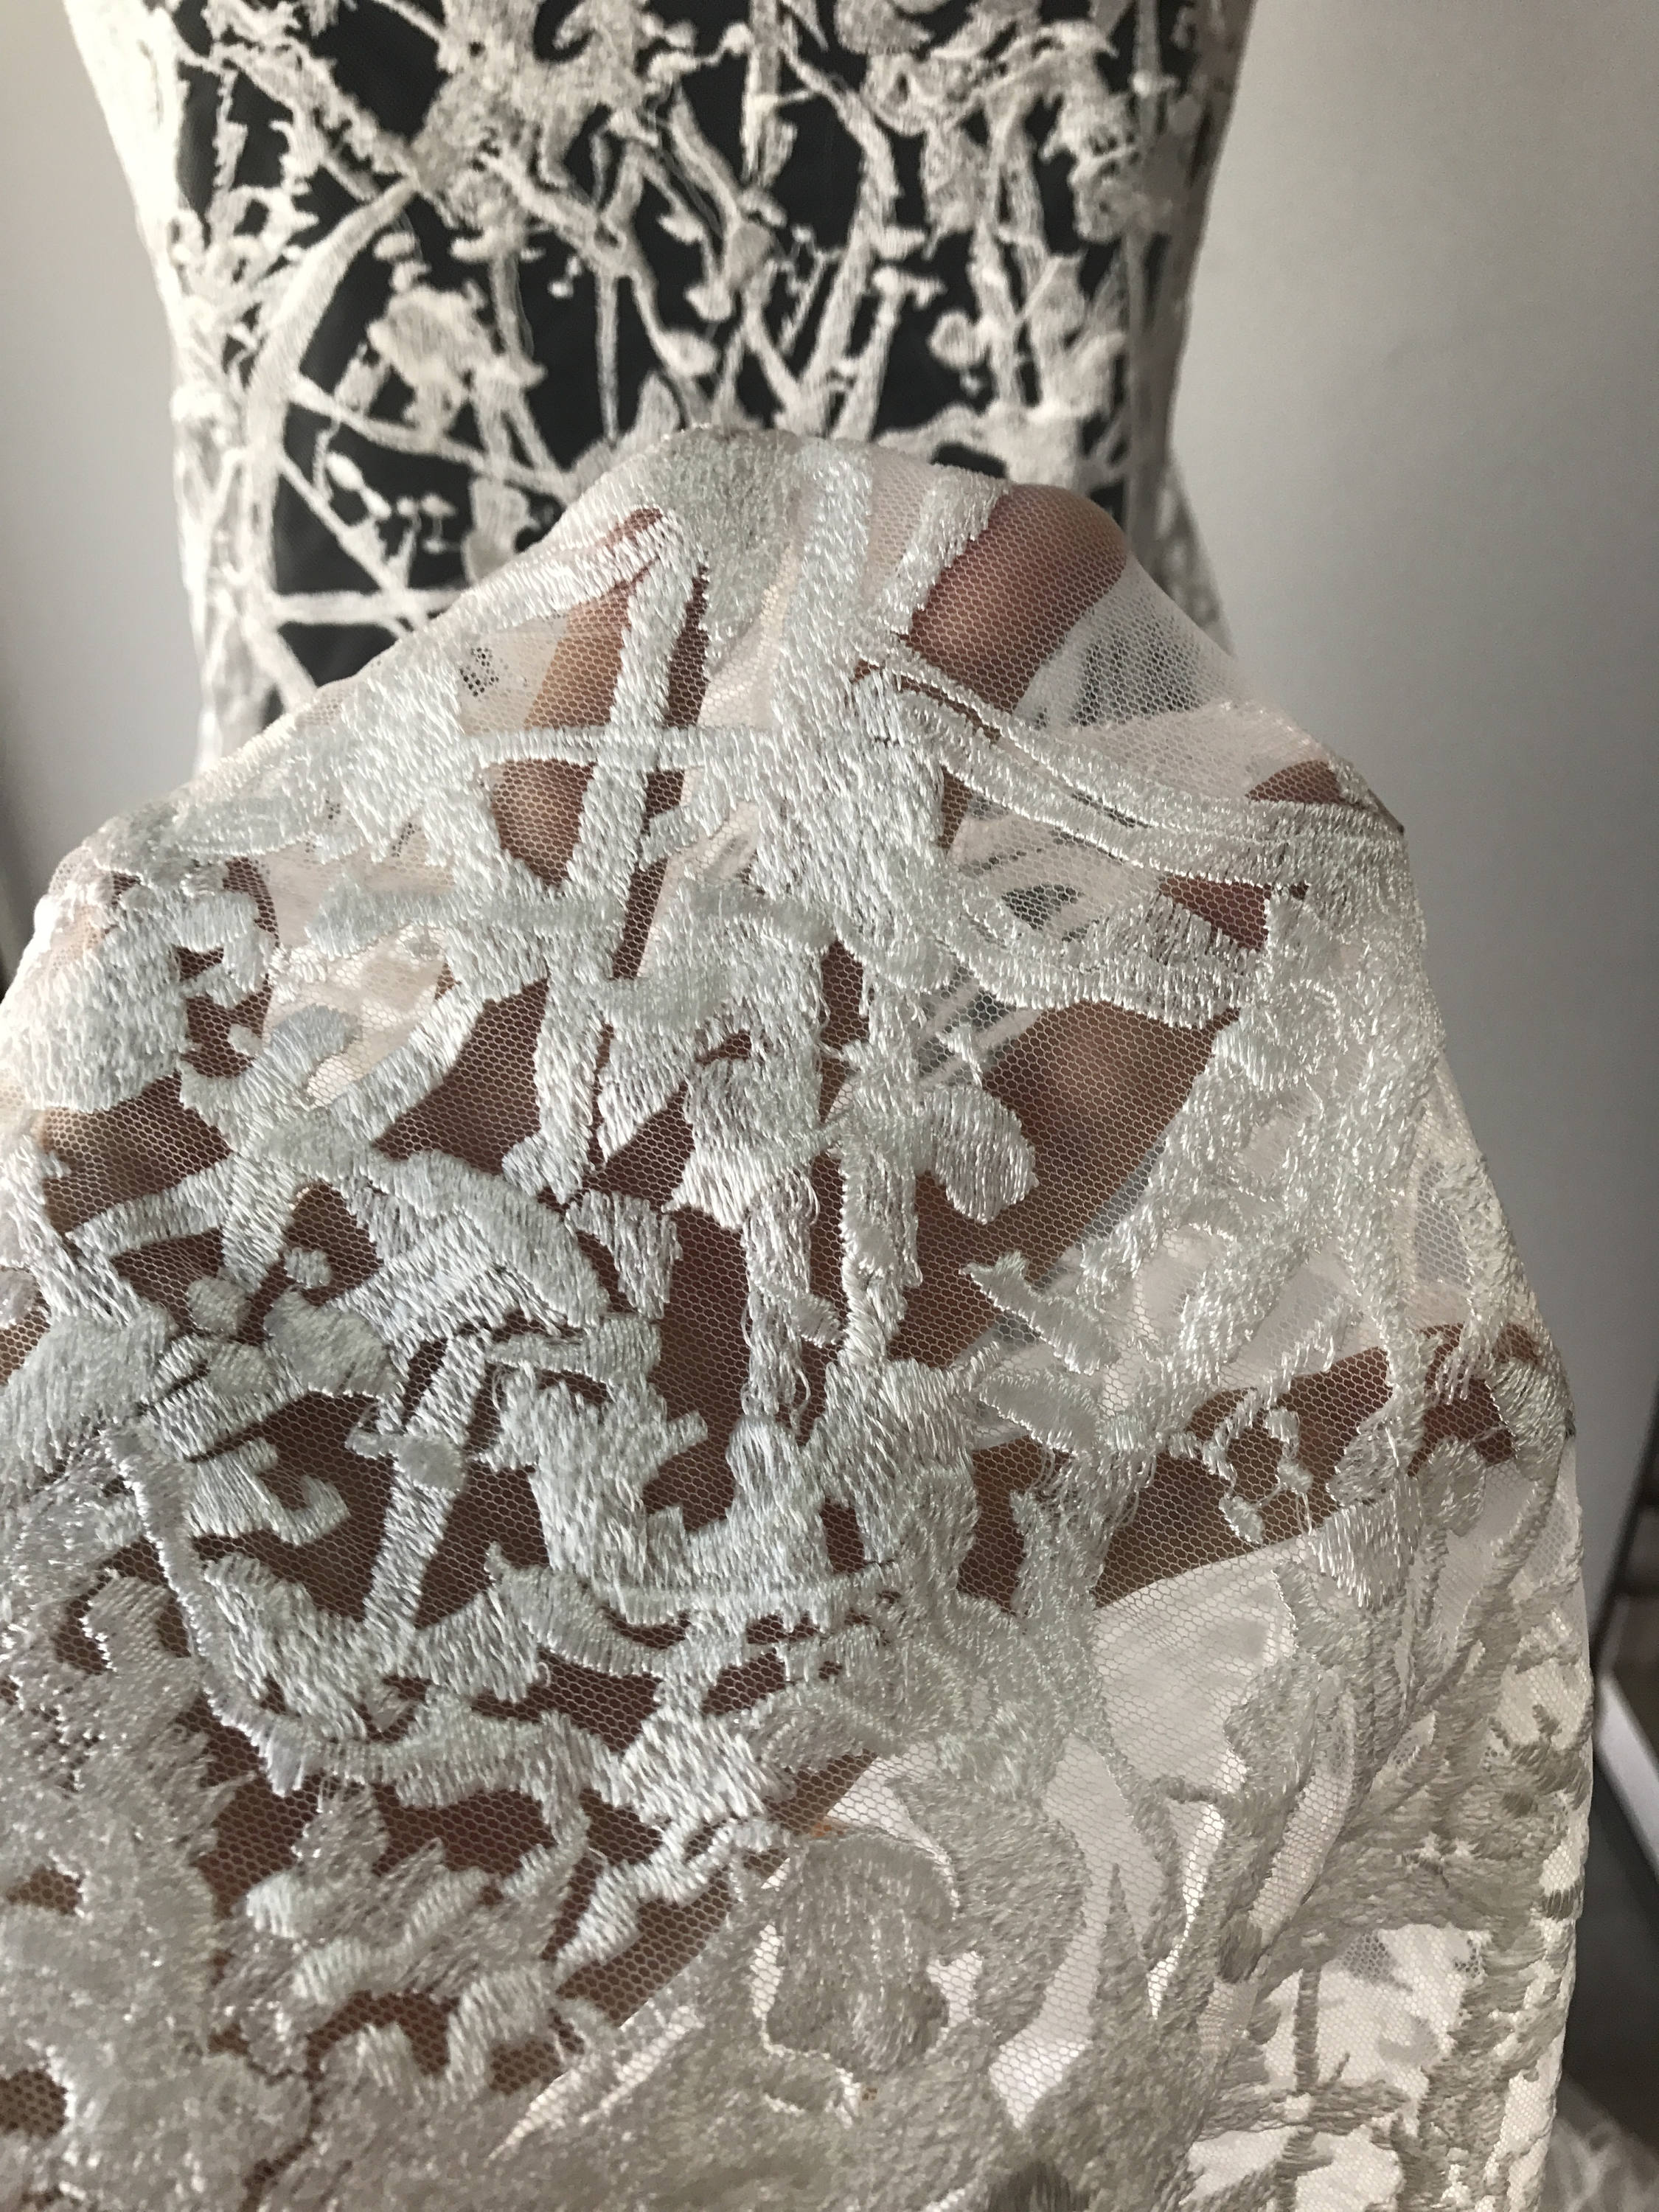 Off white ivory bridal lace fabric, embroidered tulle for wedding dress